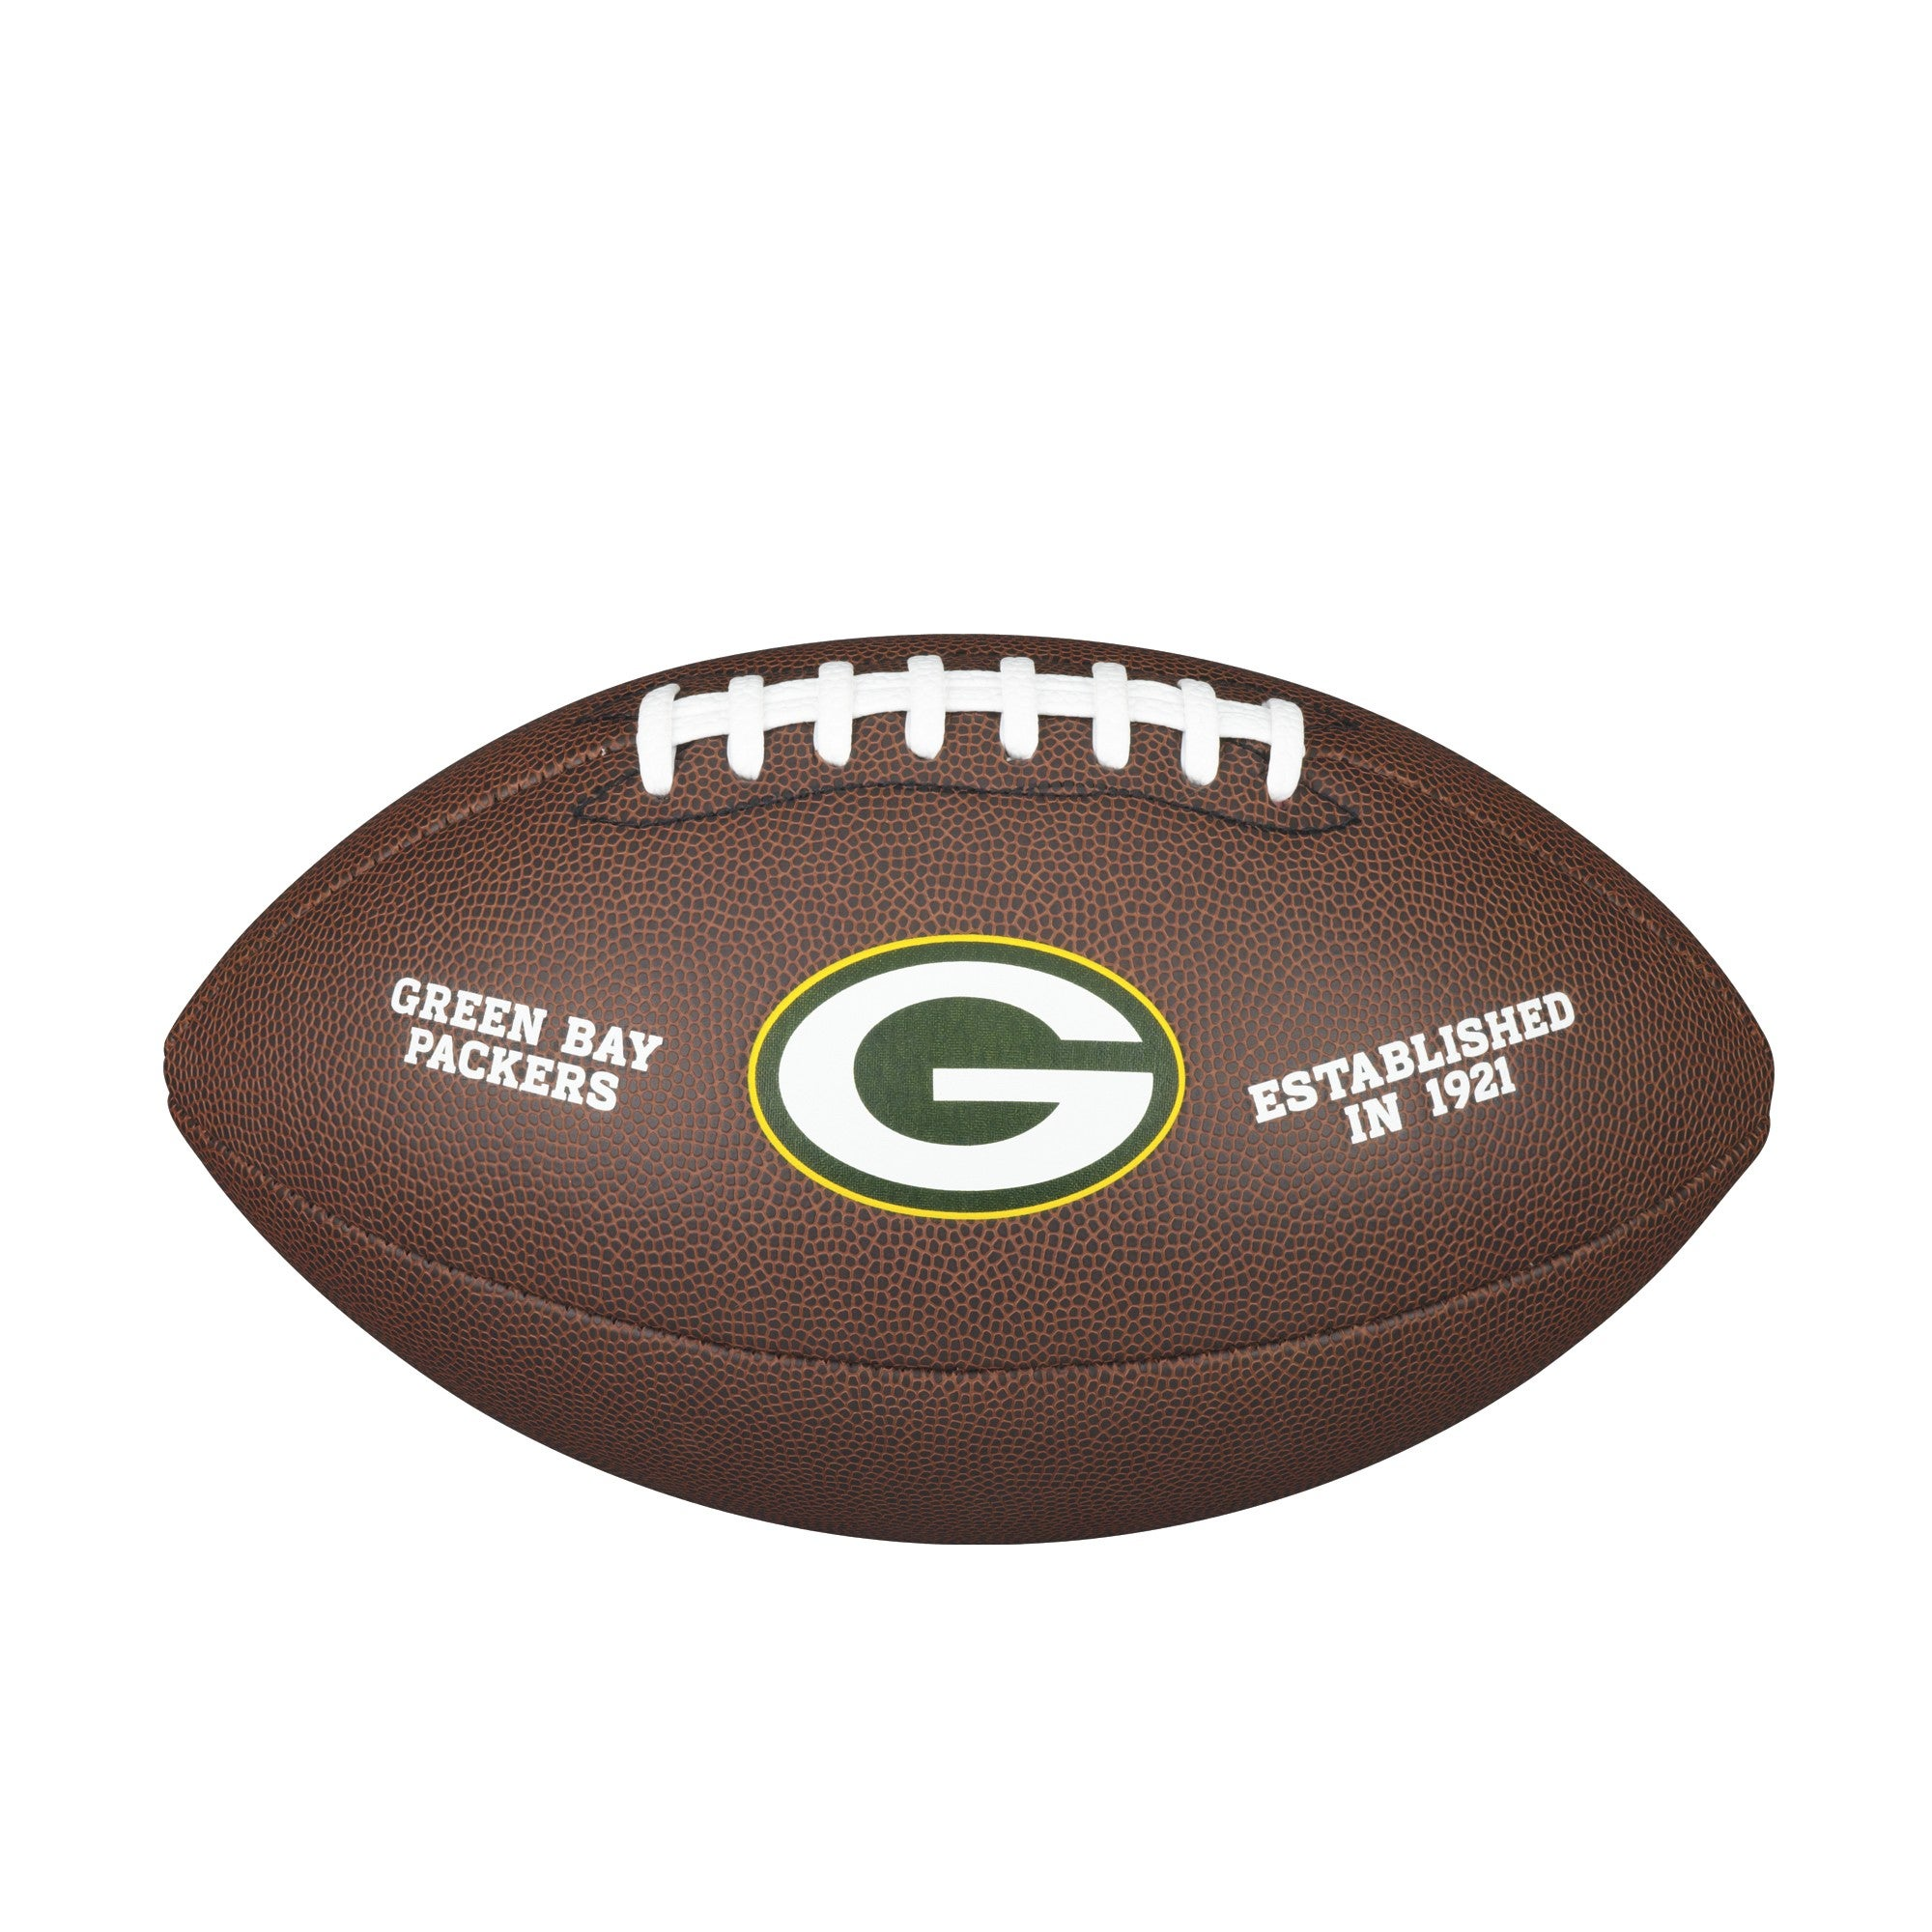 NFL TEAM LOGO COMPOSITE FOOTBALL - OFFICIAL, GREEN BAY PACKERS